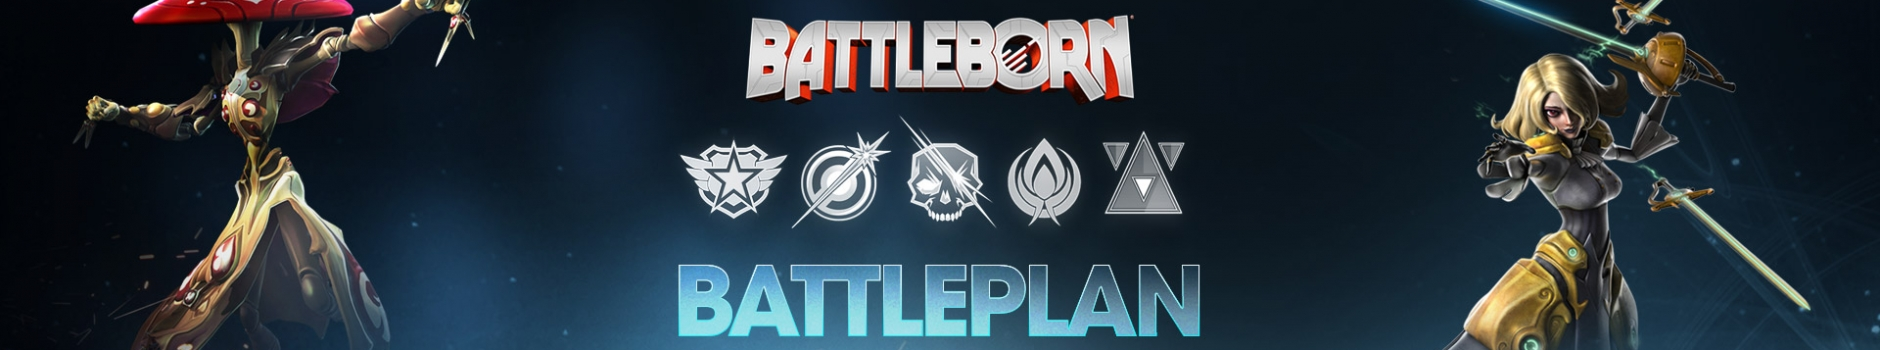 Battleplan 47: Big Changes, Lore, and Golden Skins